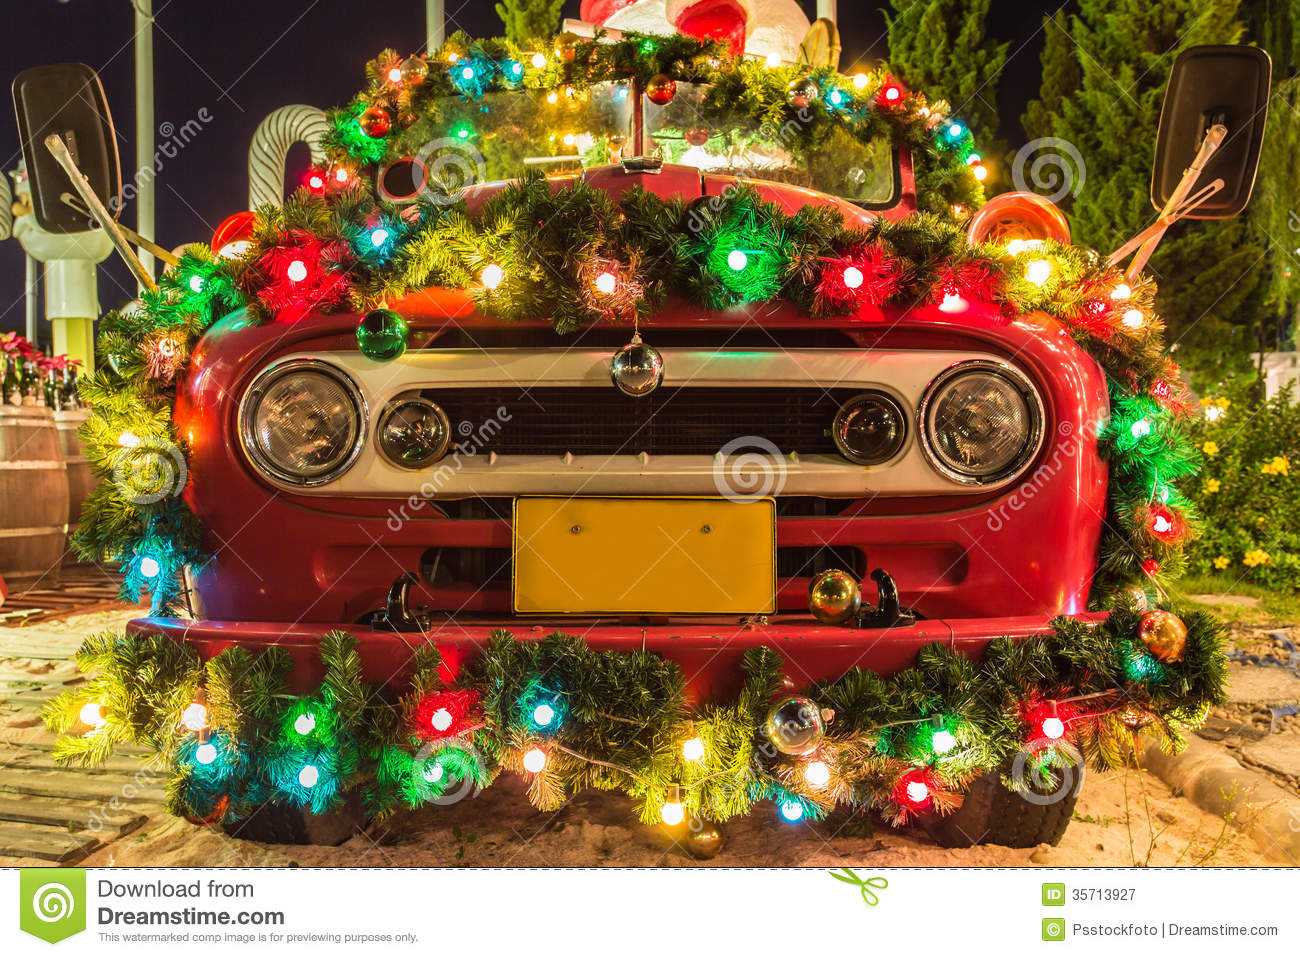 Christmas Car Decorations.Decorations Of Christmas Stock Image Image Of Gift Green